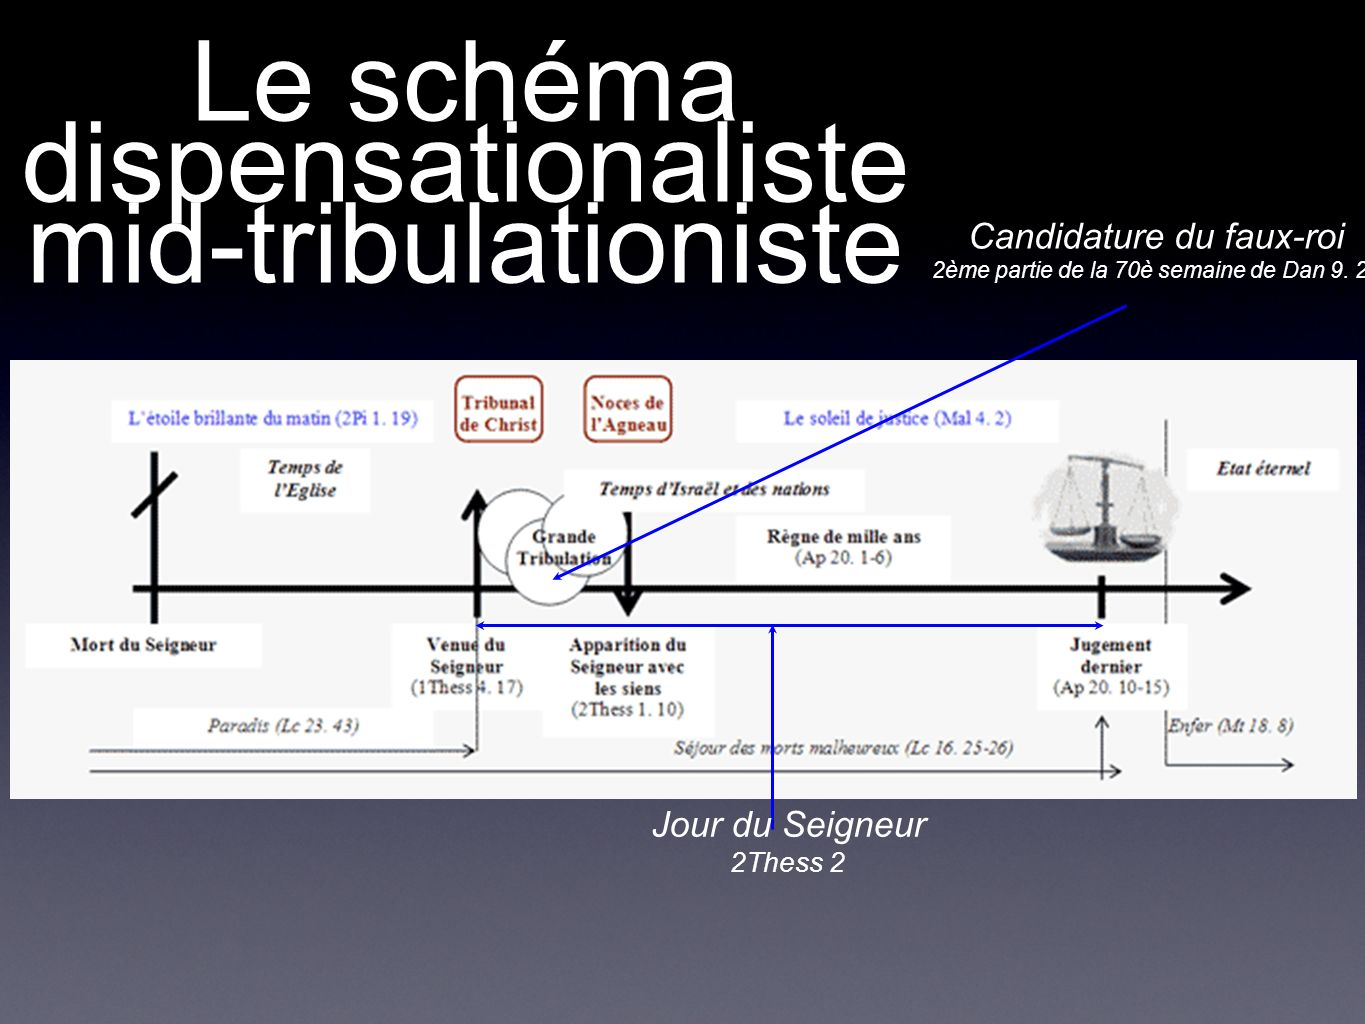 Le schéma dispensationaliste mid-tribulationiste